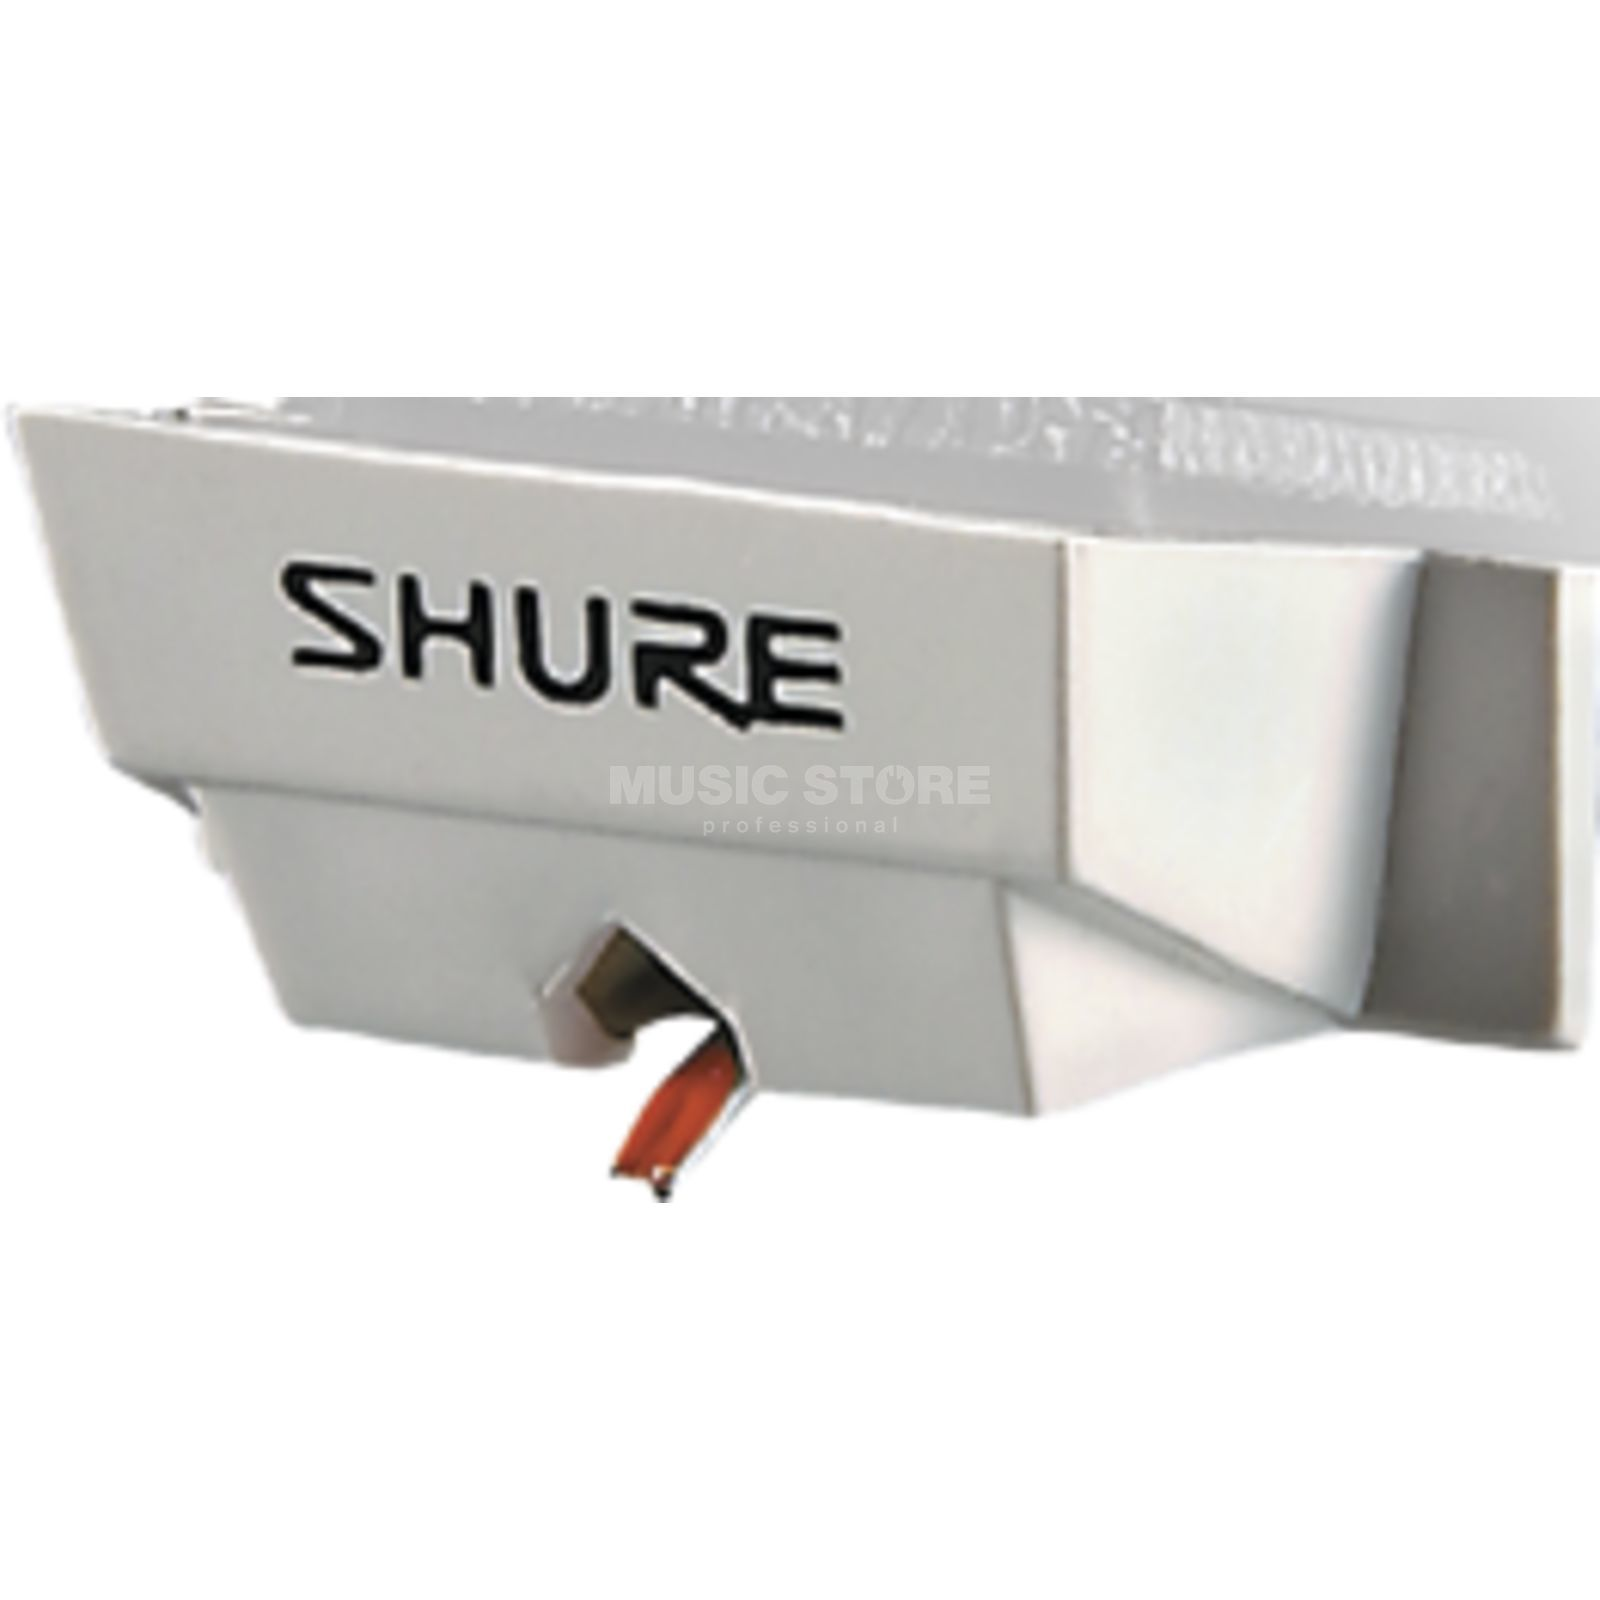 Shure N35X / Replacament Needle  for M35X Zdjęcie produktu